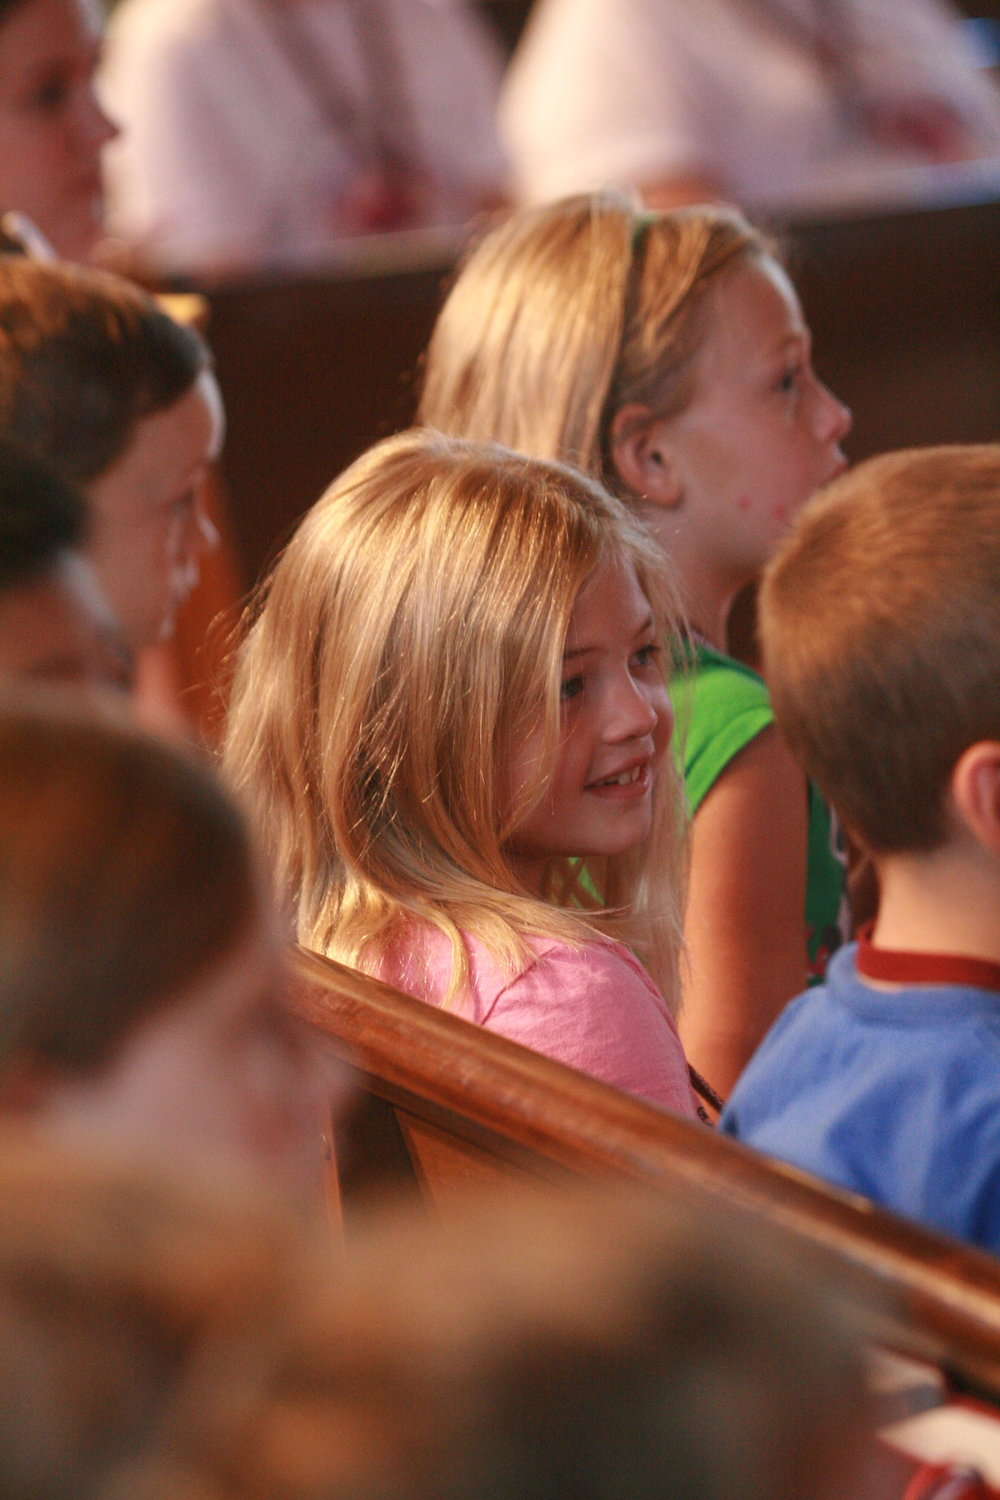 Our Mission - We seek to provide children with lifelong tools for creating, appreciating and sharing music, participating in worship, and leading productive lives in society through hands-on experiences.Learn More